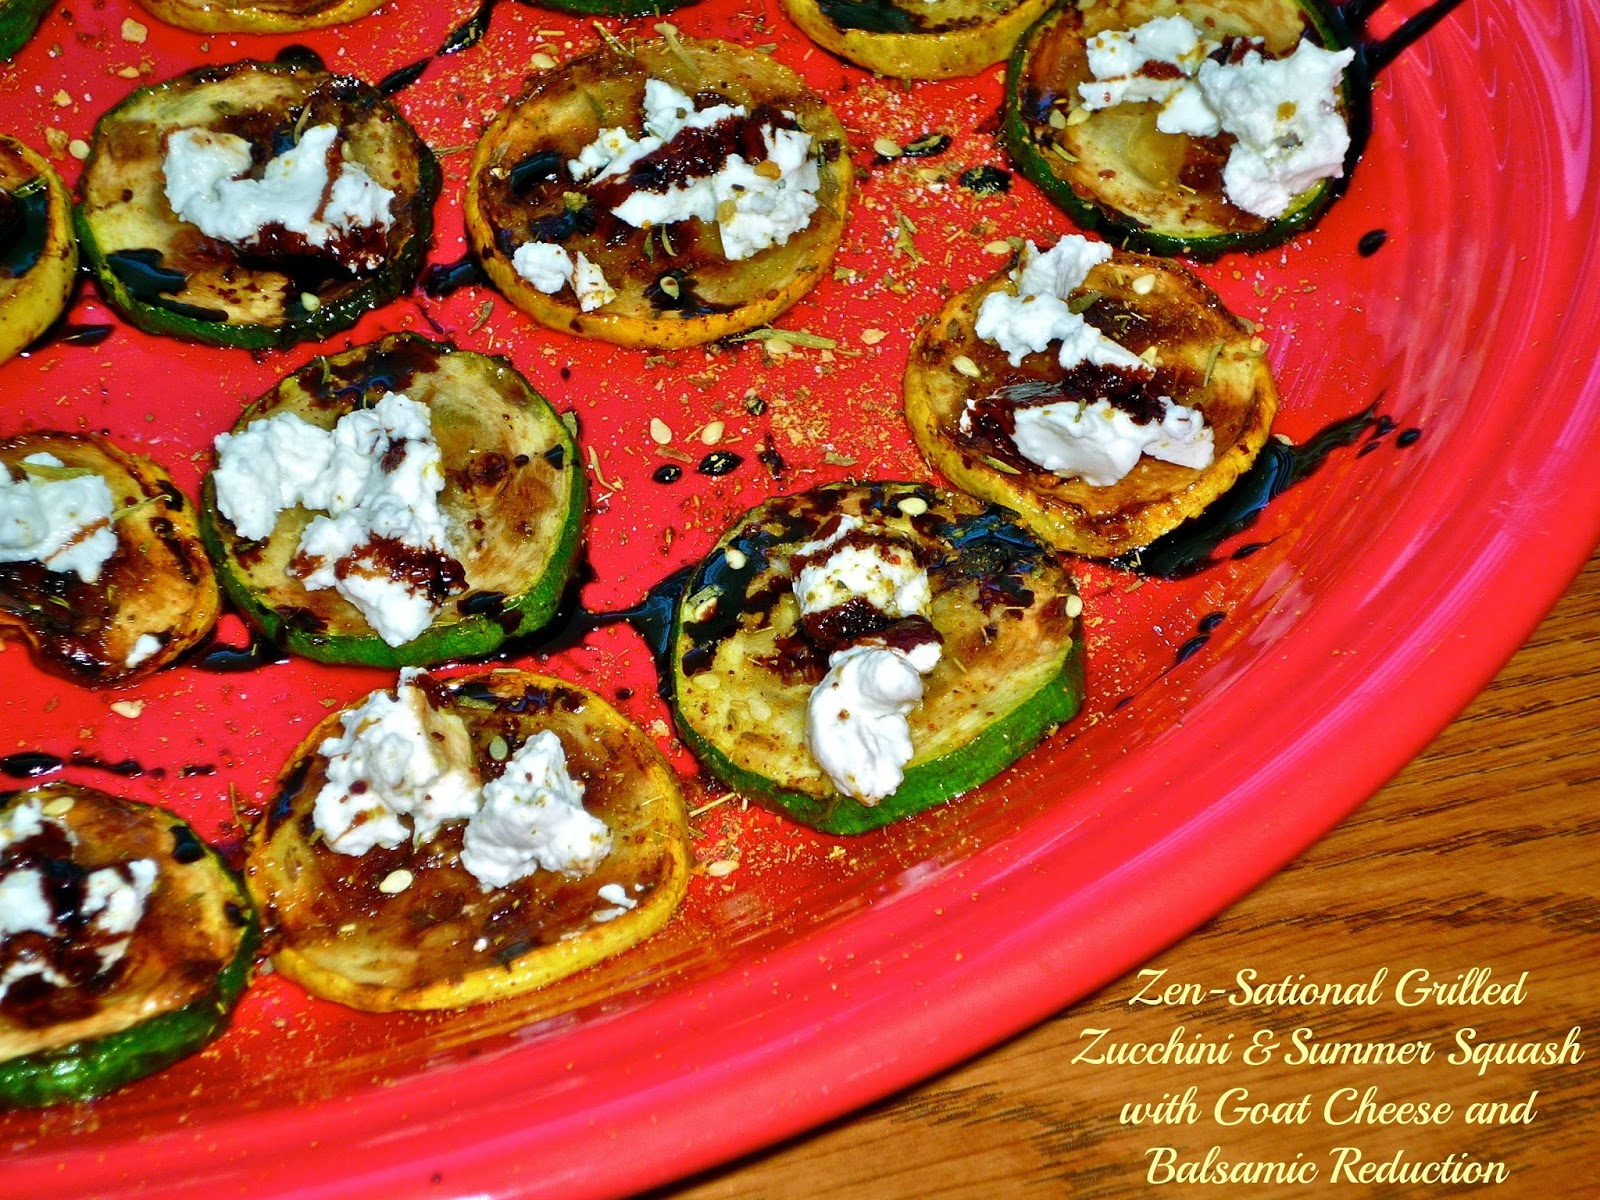 Zen-Sational Grilled Zucchini & Summer Squash with Goat Cheese and ...